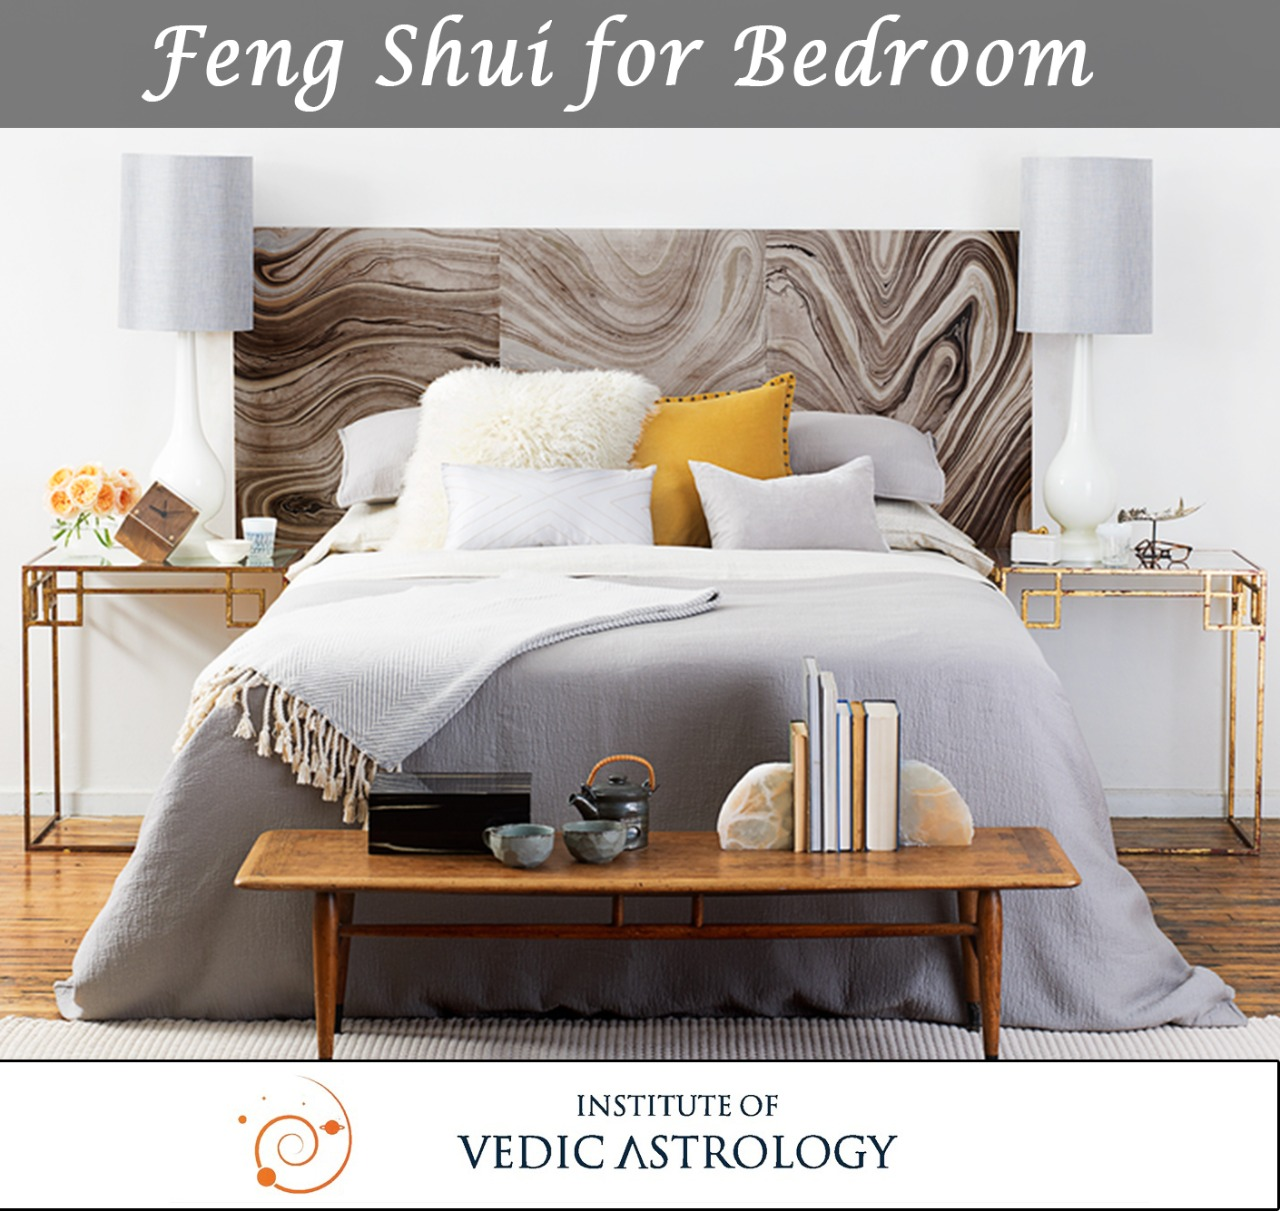 Feng Shui for Bedroom